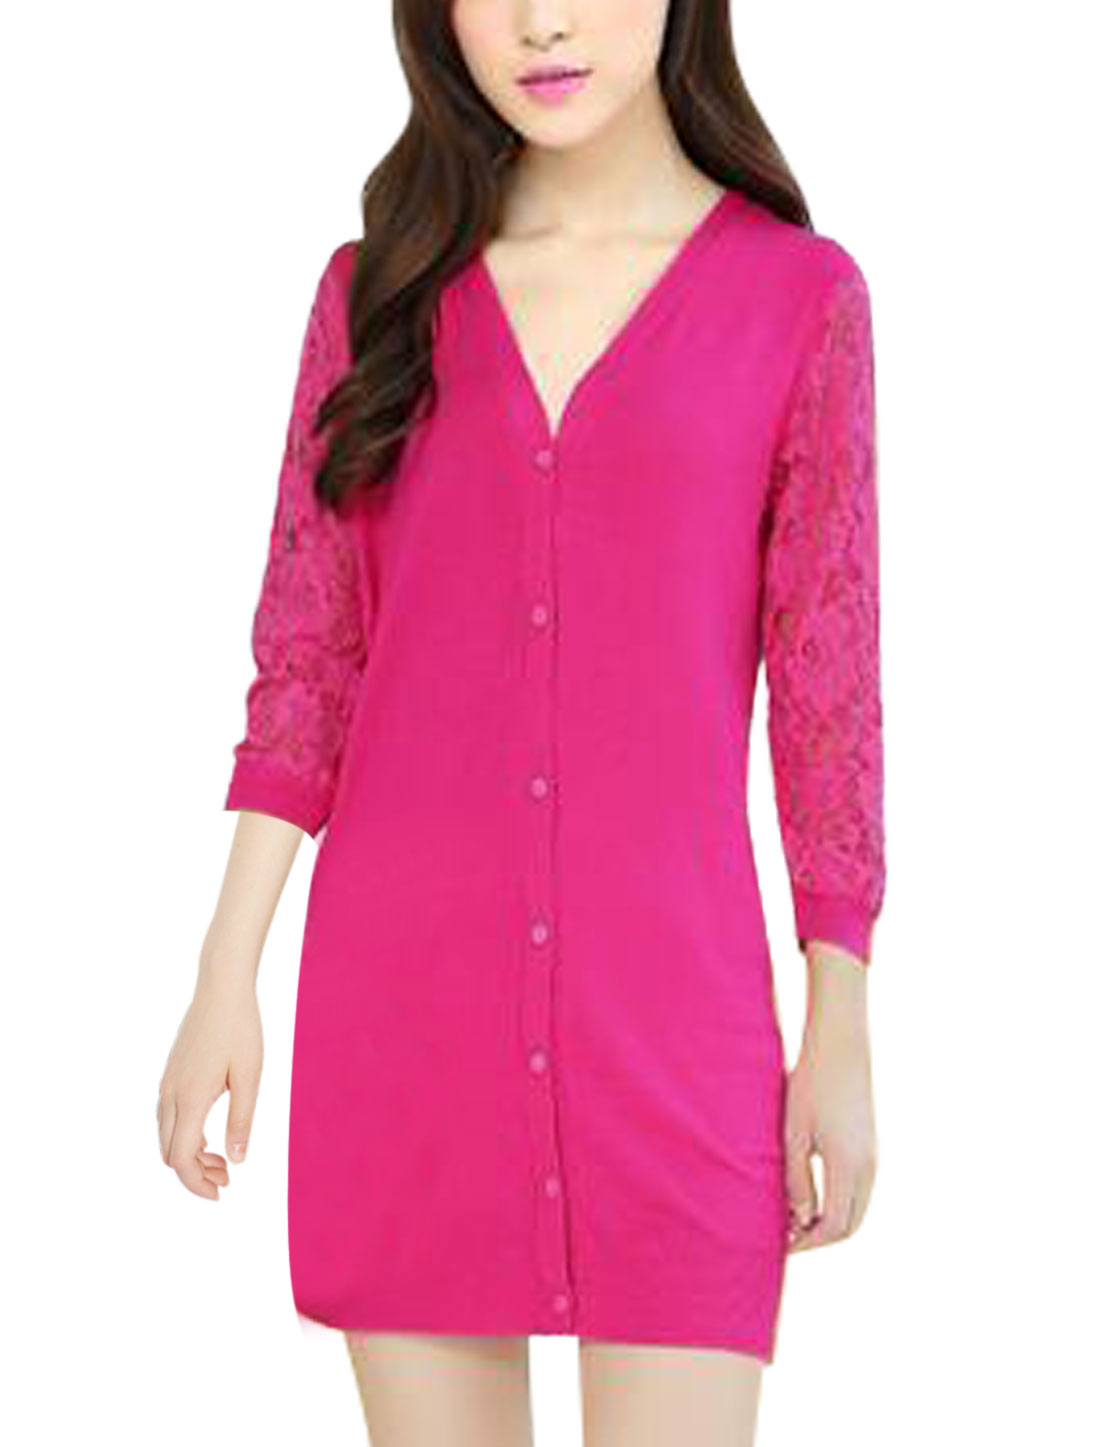 Lady Single Breasted Slim Fit 3/4 Lace Sleeve Knit Cardigan Fuchsia S